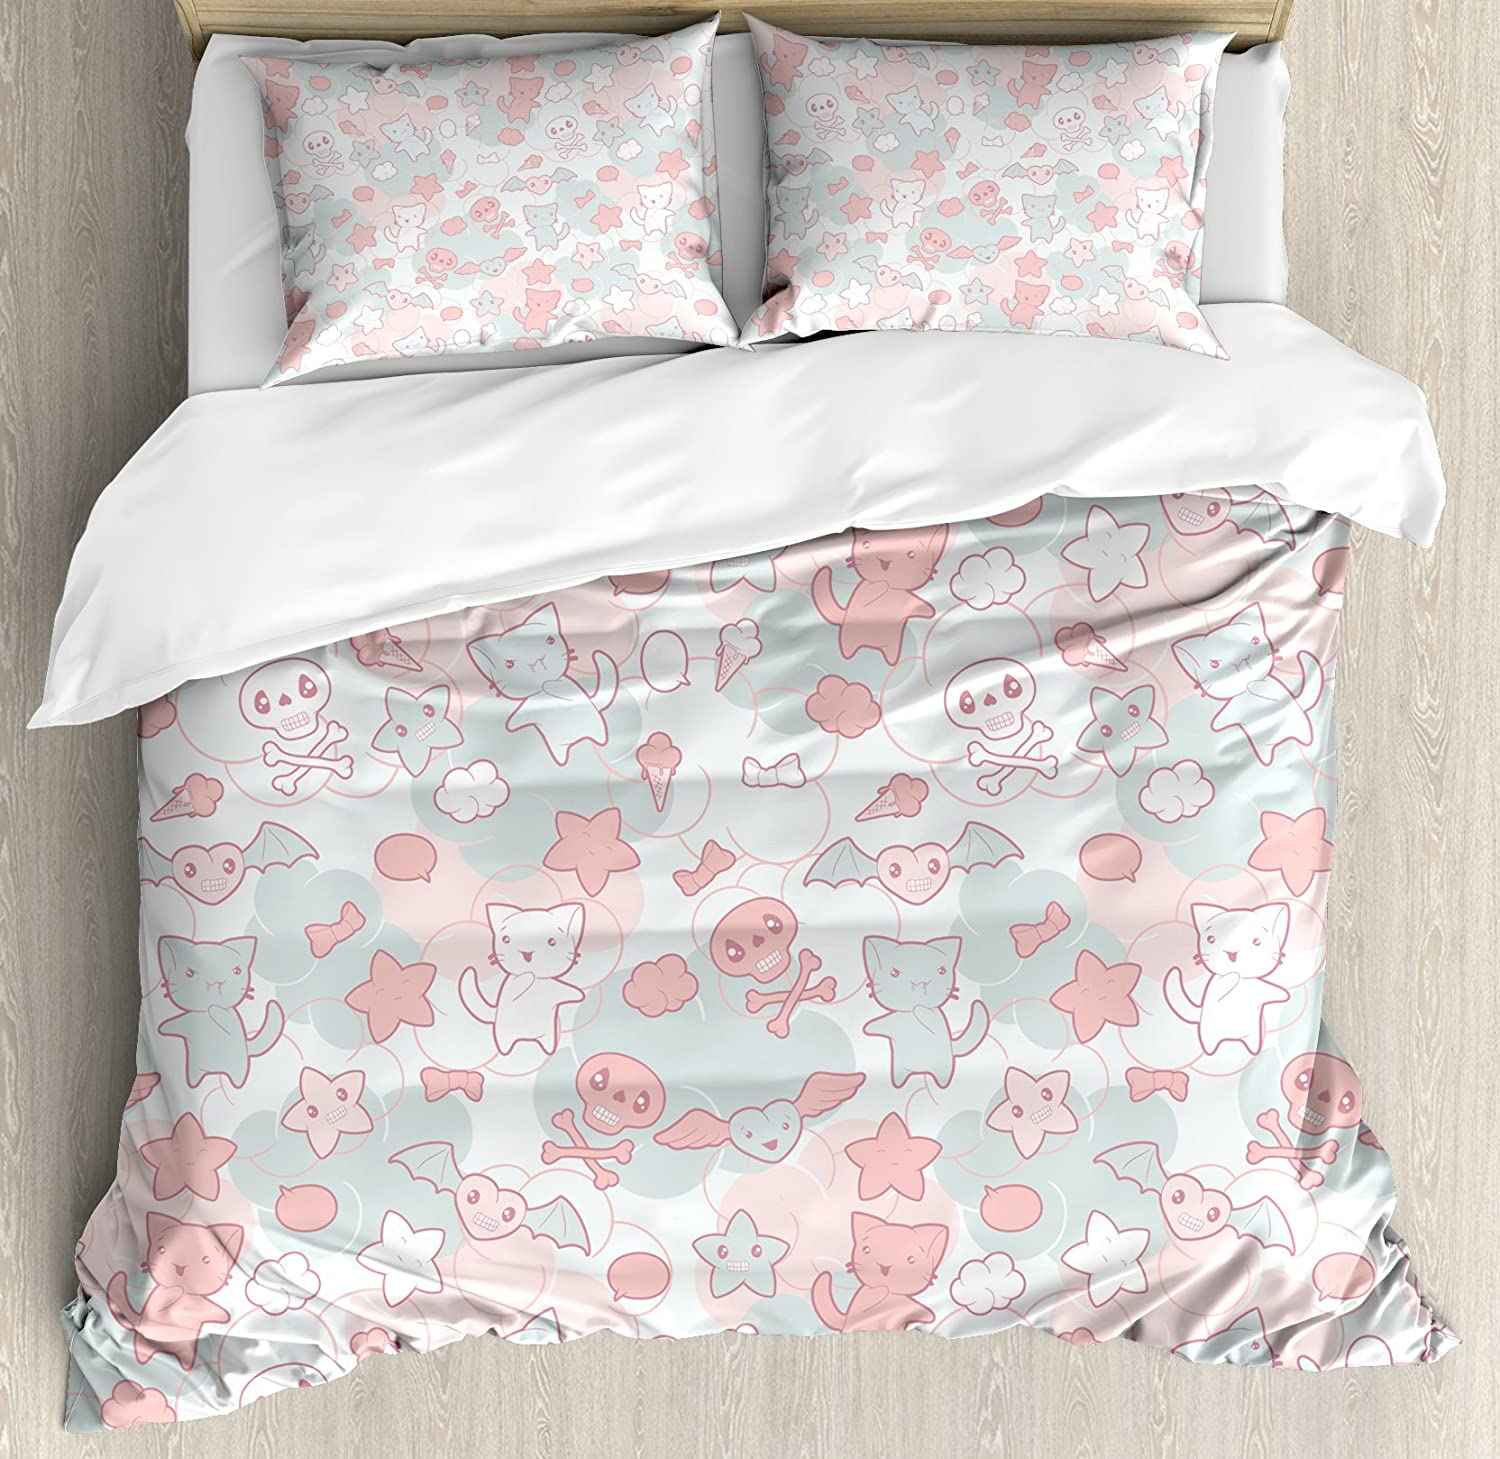 Ambesonne Doodle Duvet Cover Set, Cartoon Styled Cats Bats and Skulls Japanese Inspired Kawaii Design, Decorative 3 Piece Bedding Set with 2 Pillow Shams, King Size, Light Pink